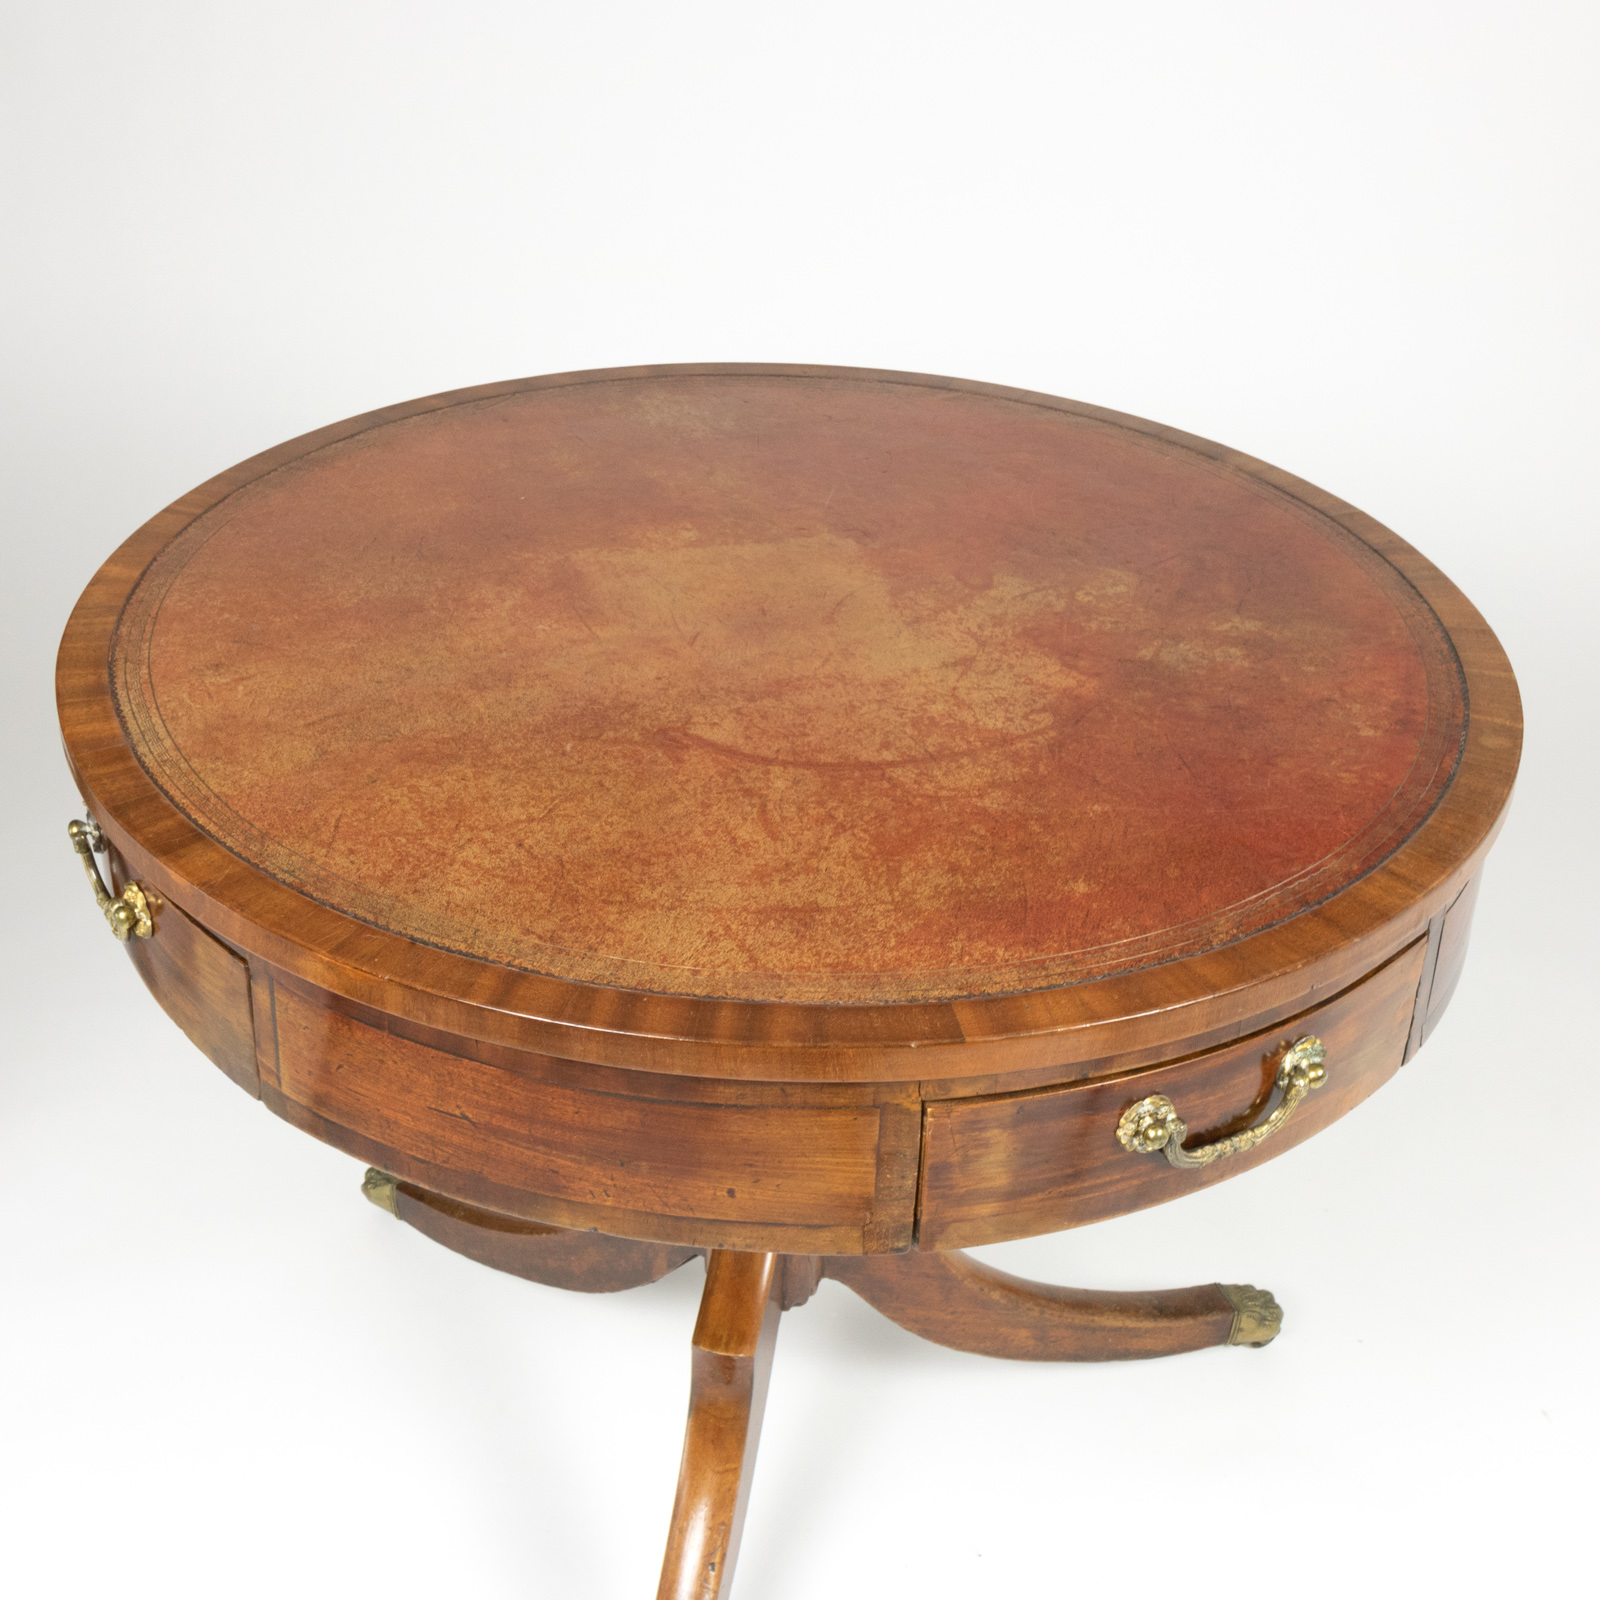 Regency Period Mahogany Drum Table With Embossed Leather Inset And Lion Paw  Casters, English Circa